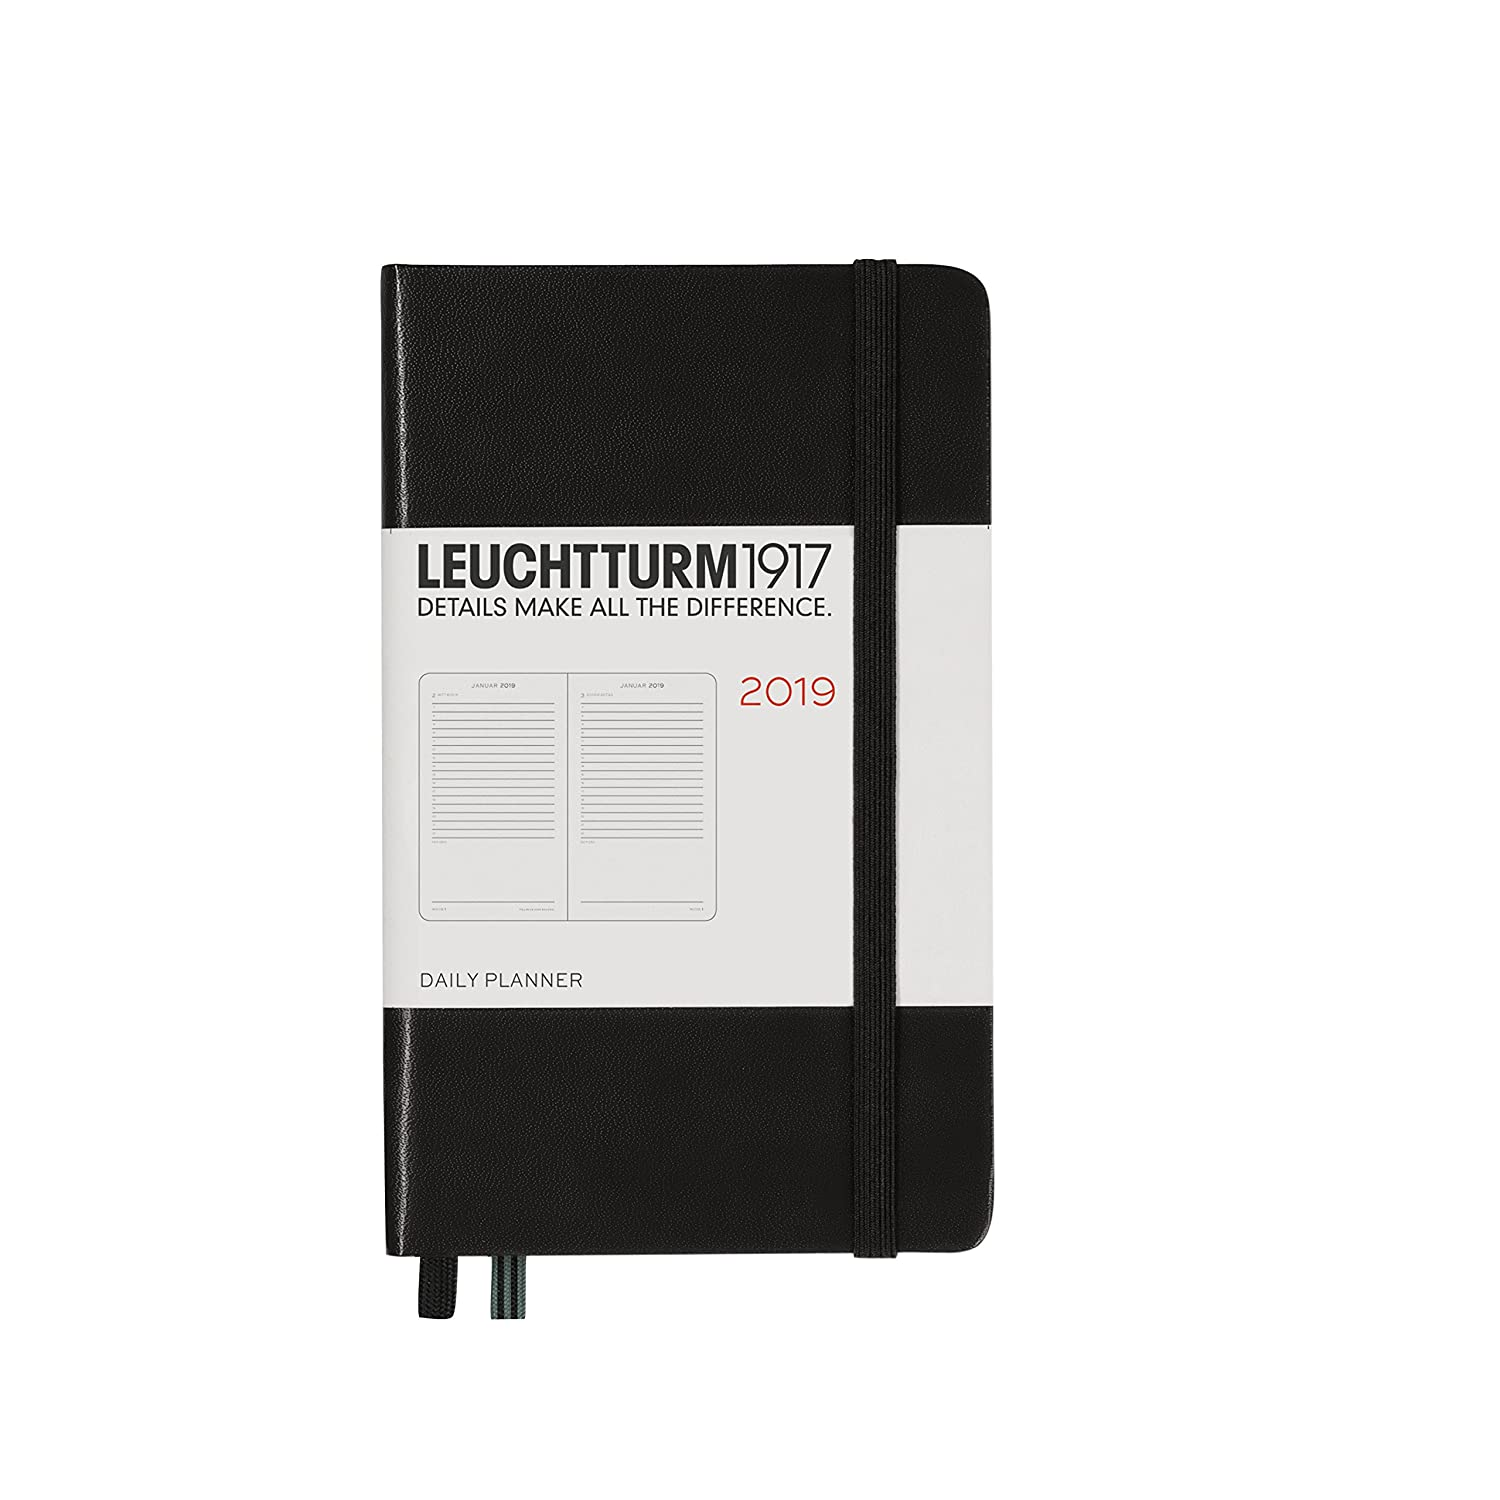 Amazon.com : Leuchtturm1917 357876 Daily Planner 2019 ...